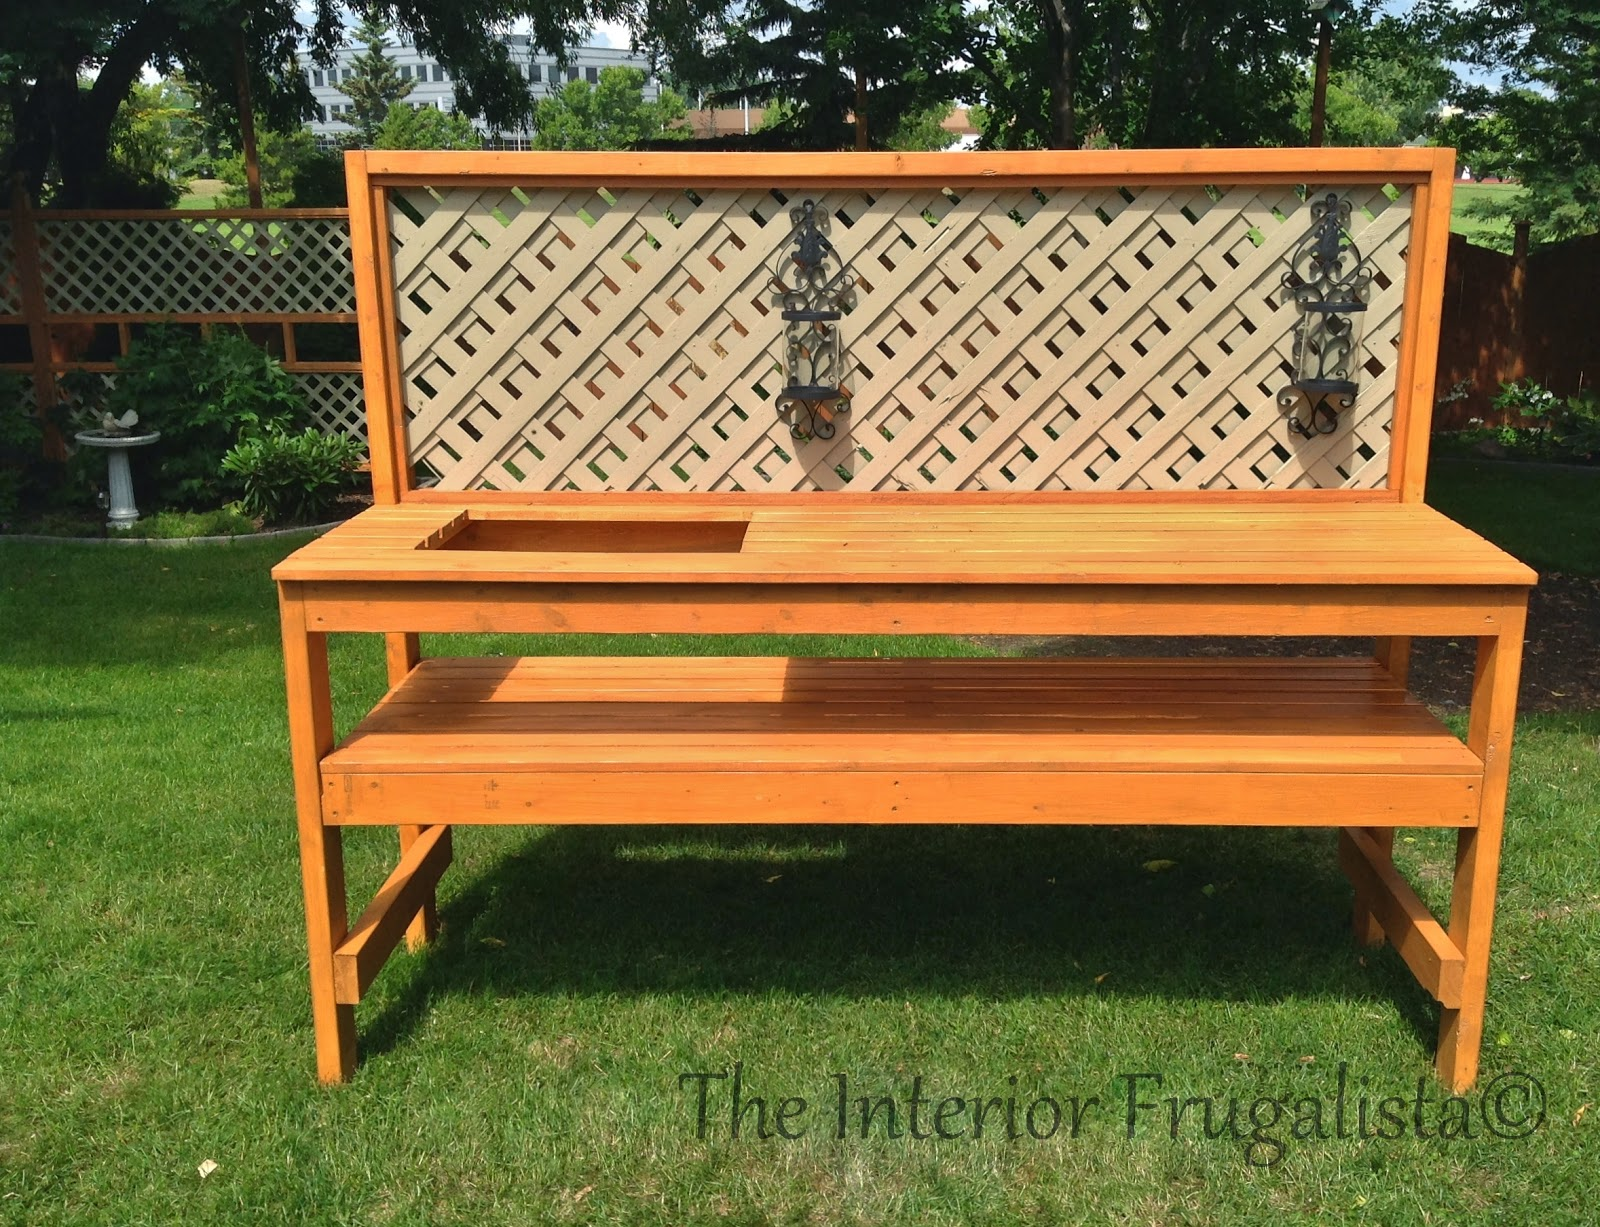 Diy Potting Bench And Outdoor Bar The Interior Frugalista Diy Potting Bench And Outdoor Bar